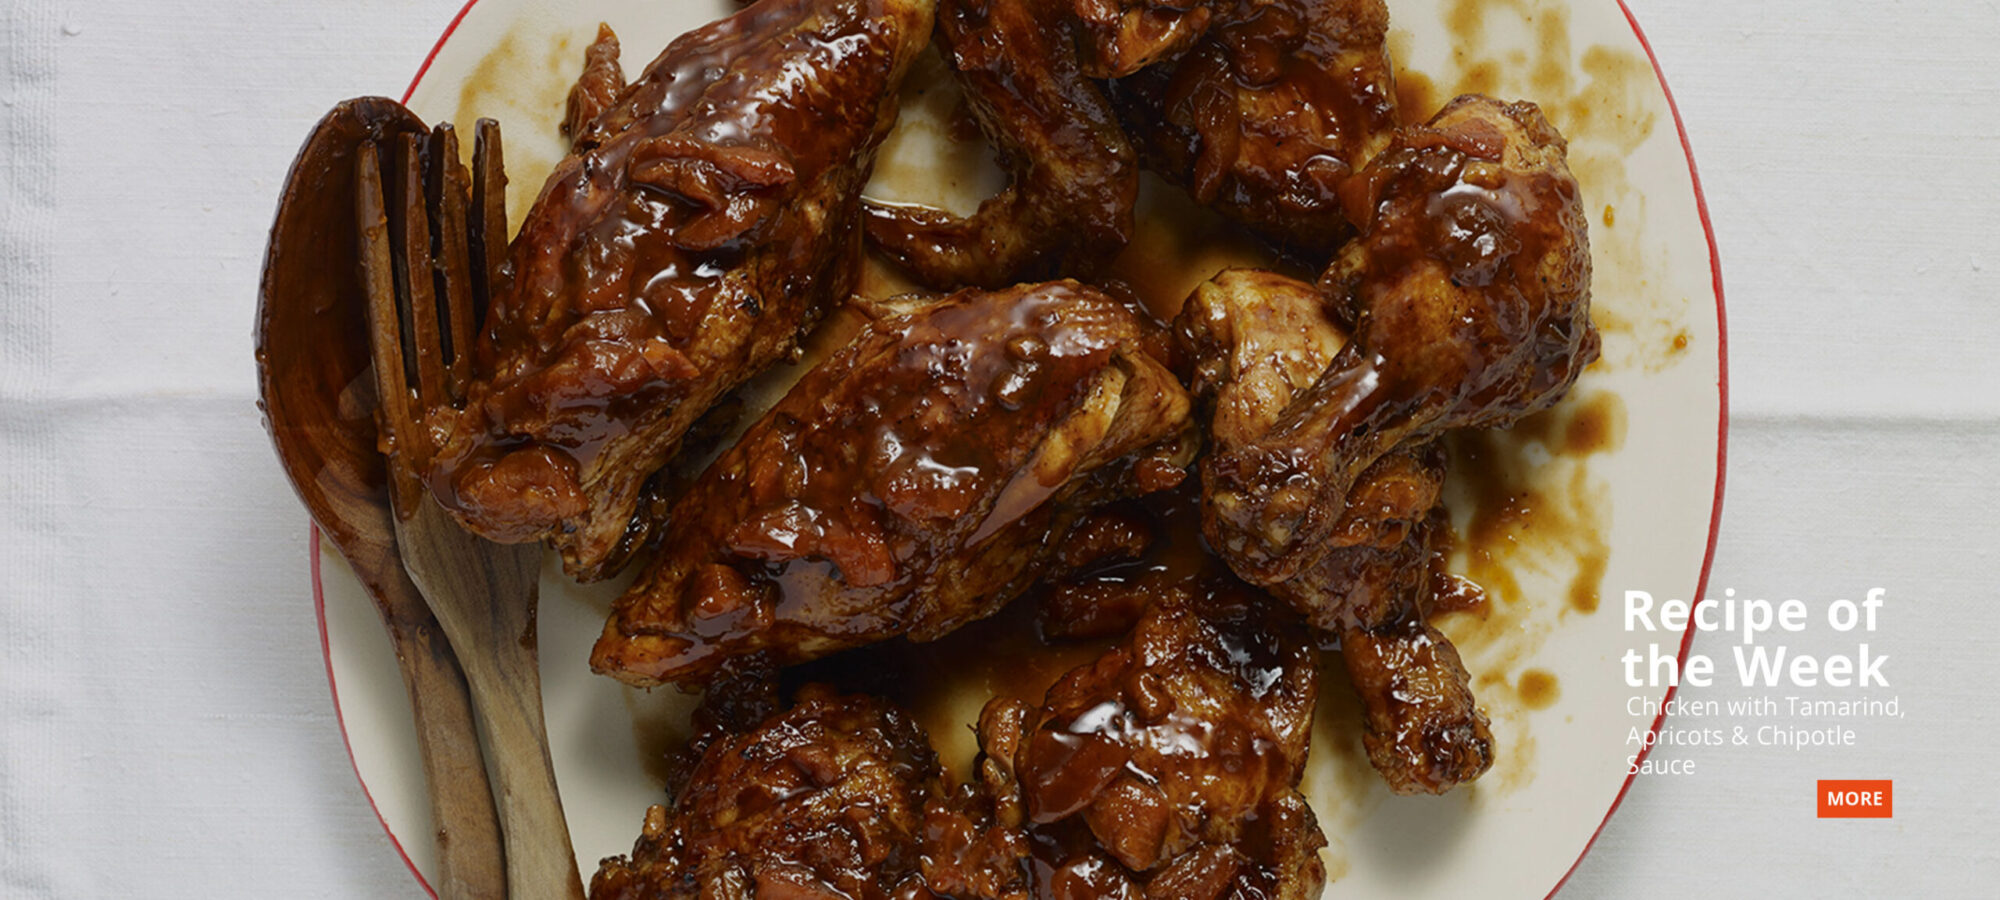 go to Pati's recipe of the week Chicken with Tamarind, Apricots and Chipotle Sauce